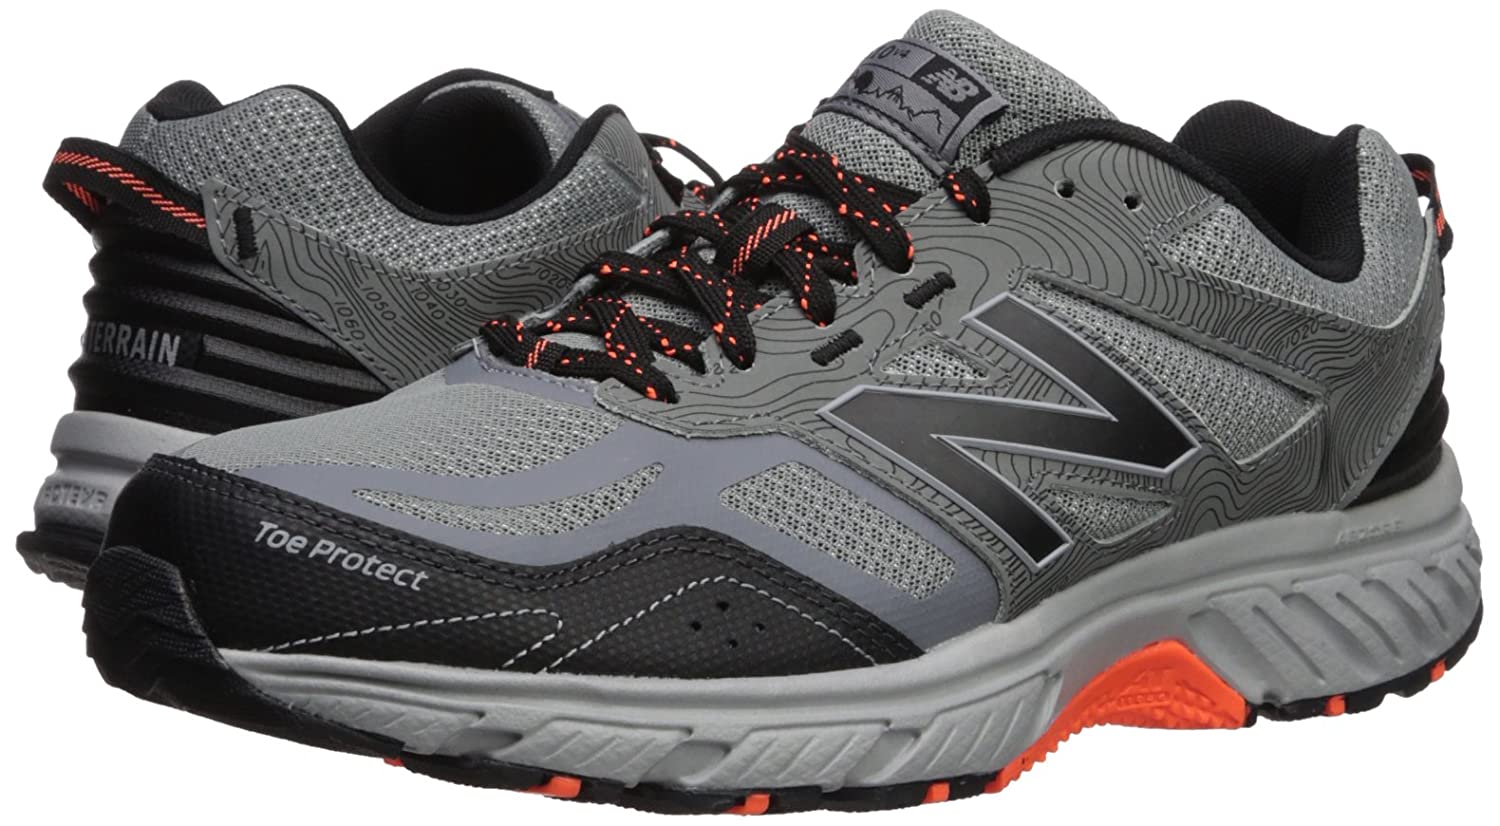 f9979d5d5bc New Balance Men's 510v4 Cushioning Trail Running Shoe